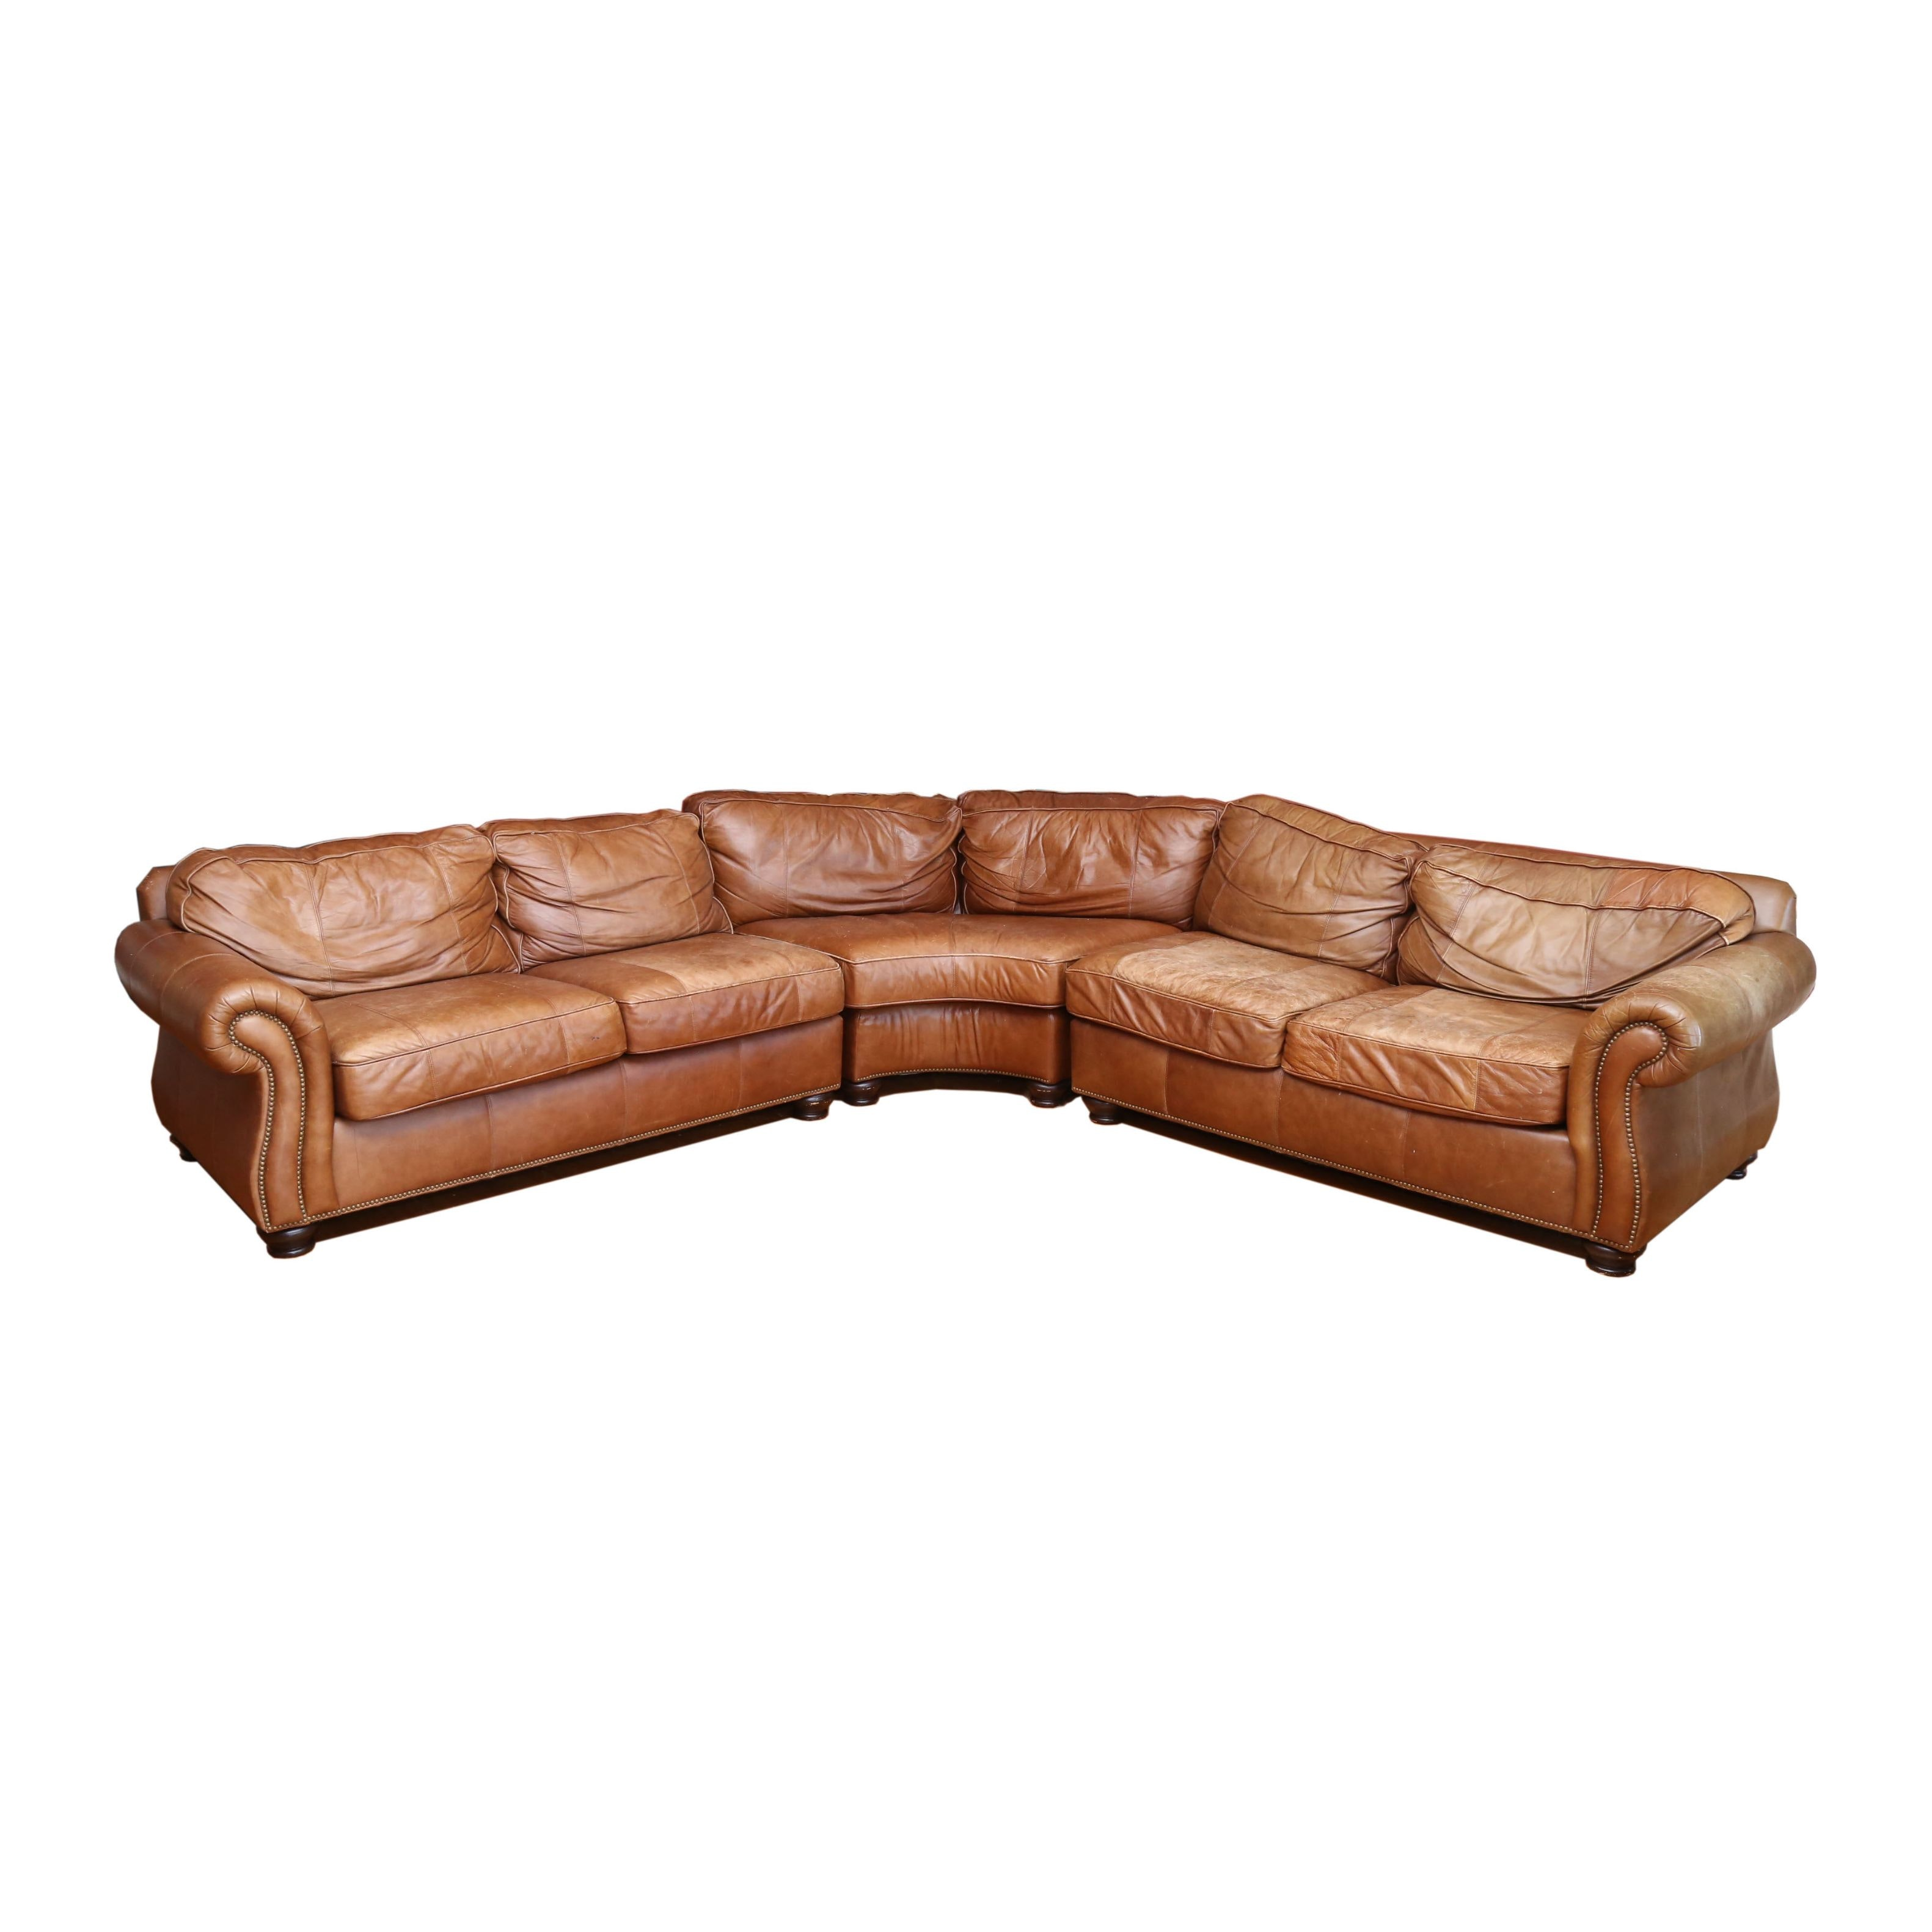 Leather Three-Piece Sectional Sofa, 21st Century